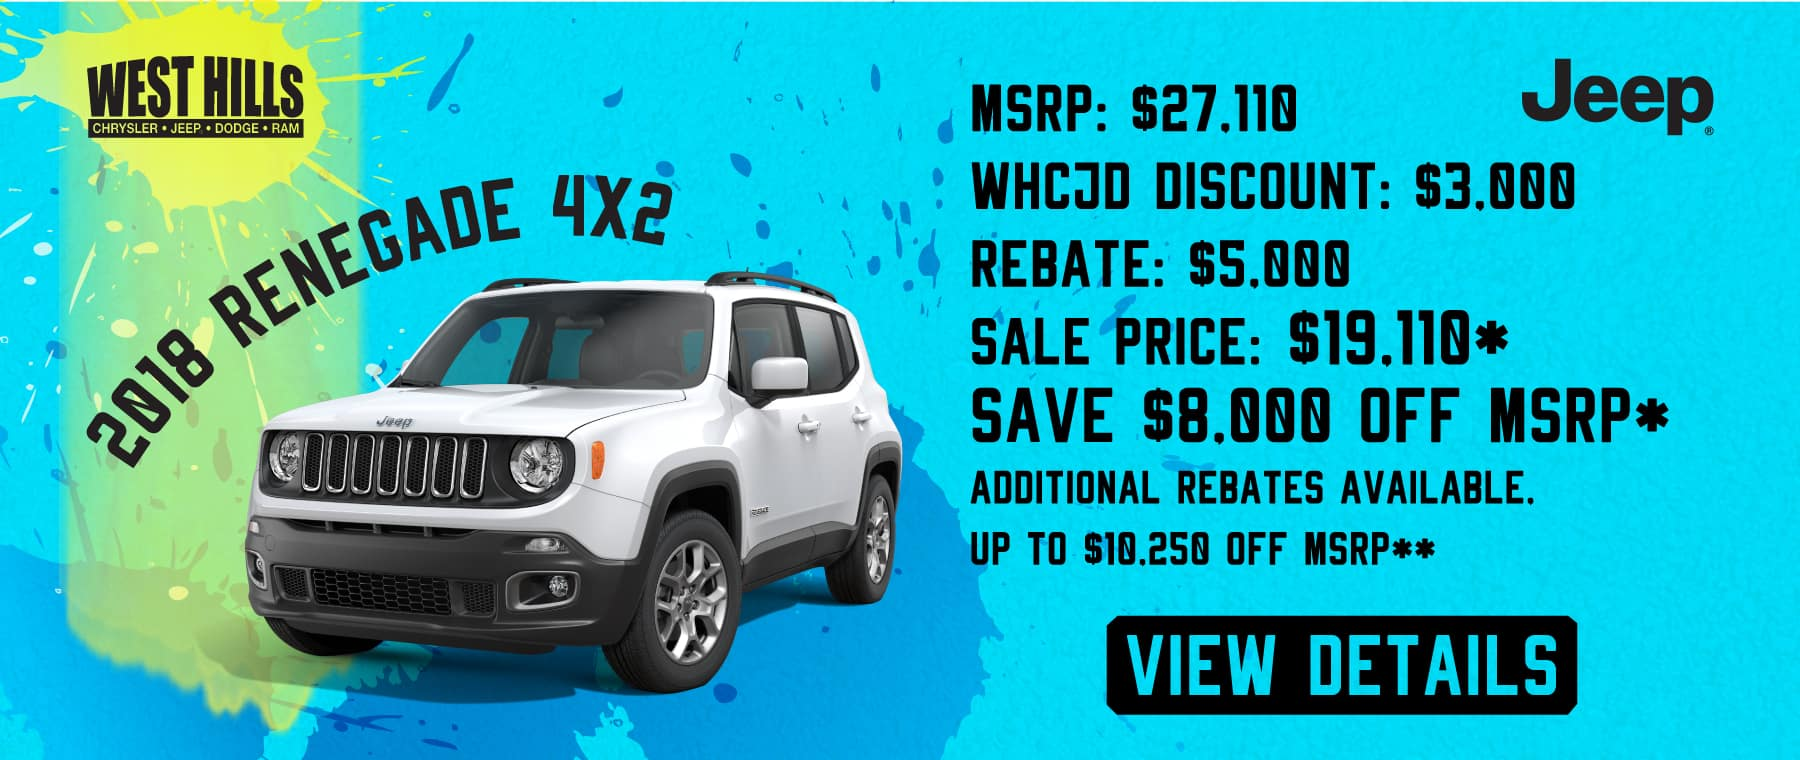 2018 Jeep Renegade 4x2   MSRP: $27,110 WHCJD Discount: $3,000 Rebate: $5,000 Sale Price: $19,110*  SAVE $8,000 OFF MSRP*   ADDITIONAL REBATES AVAILABLE, UP TO $10,250 OFF MSRP**